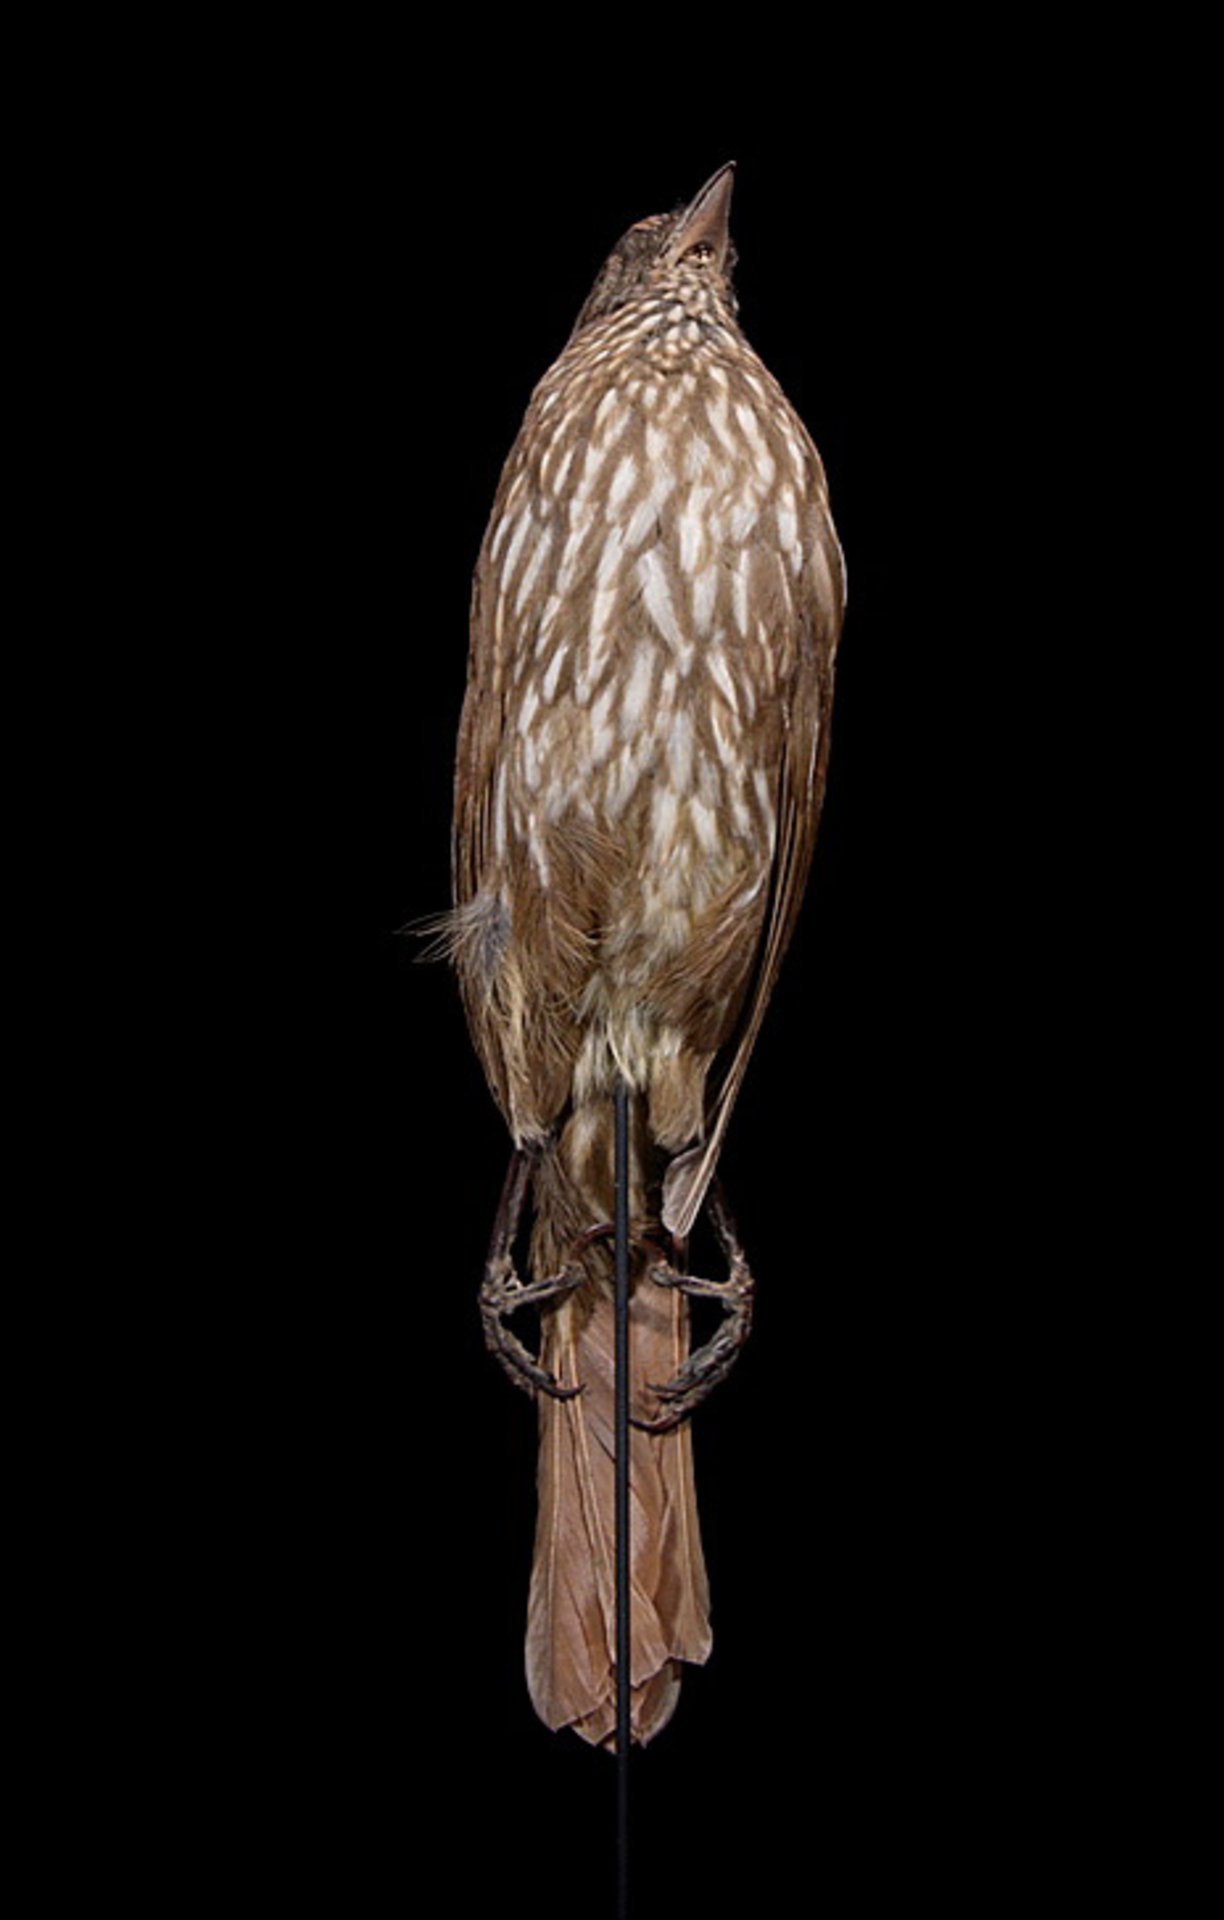 RMNH.AVES.110041 | Turnagra capensis capensis Sparrman, 1787